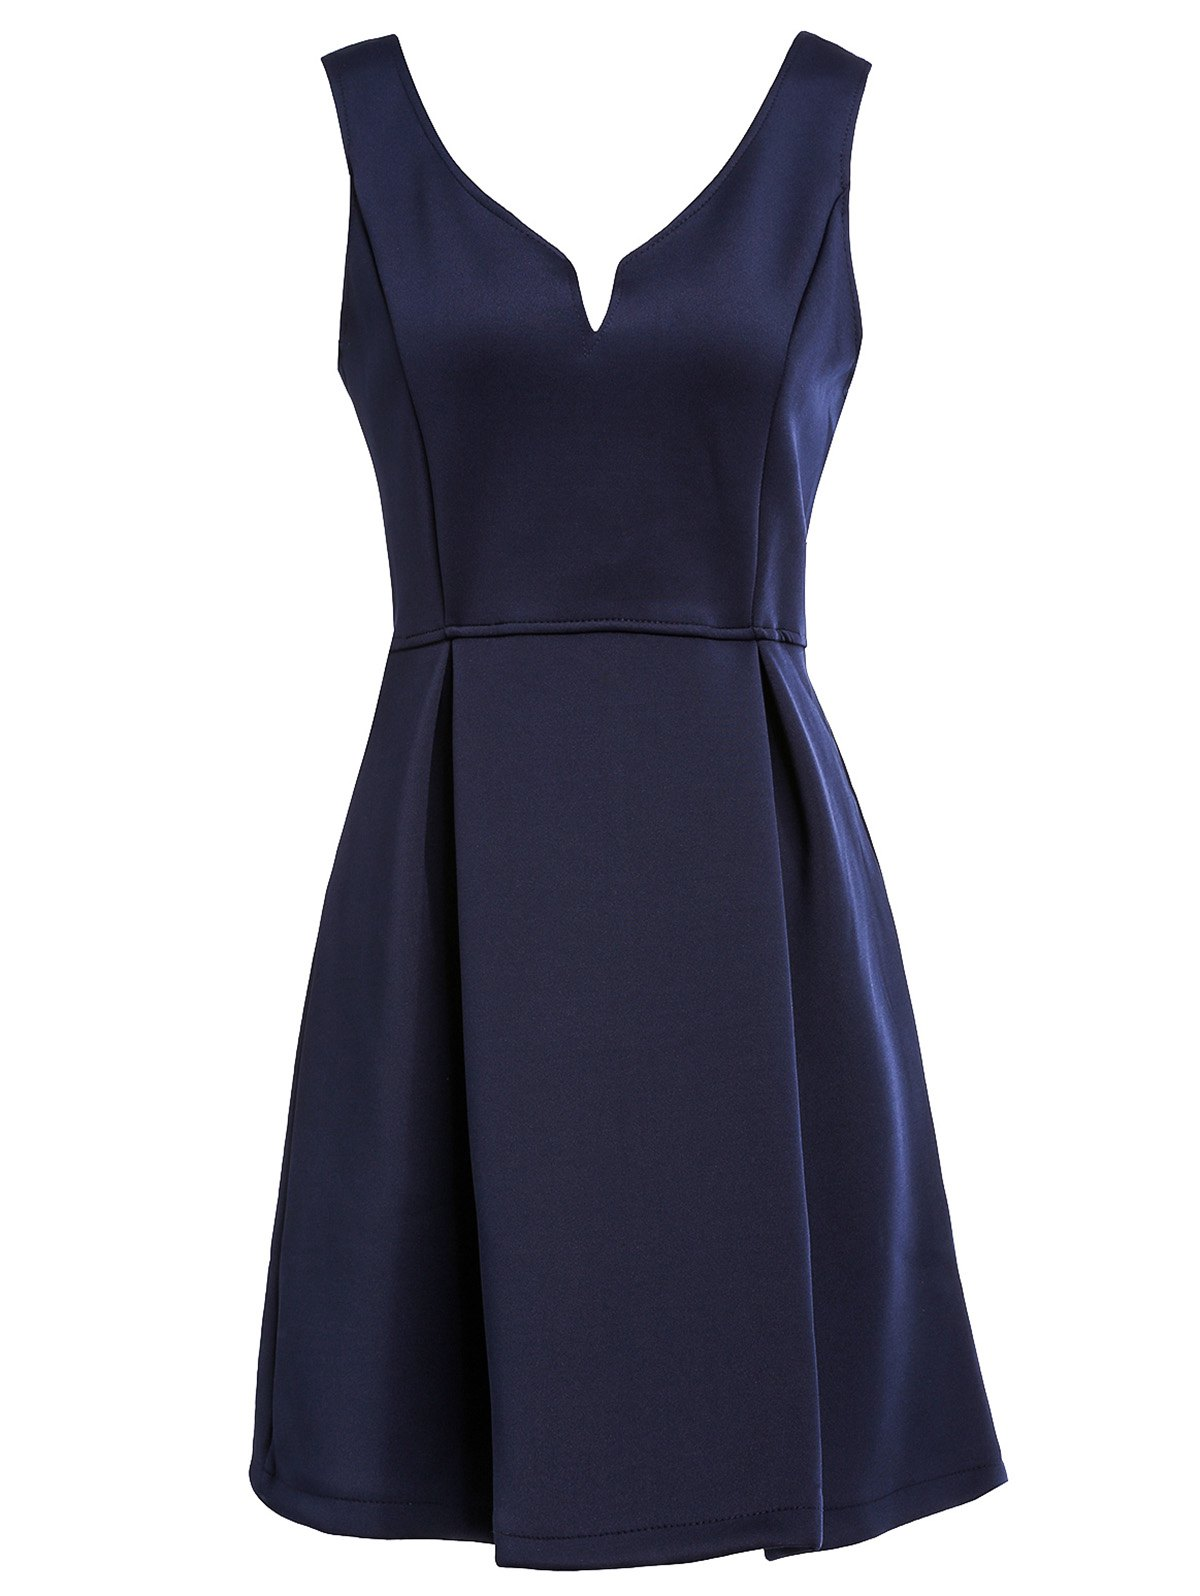 Women's Sleeveless Solid Color V-Neck A-Line Dress - NAVY BLUE M